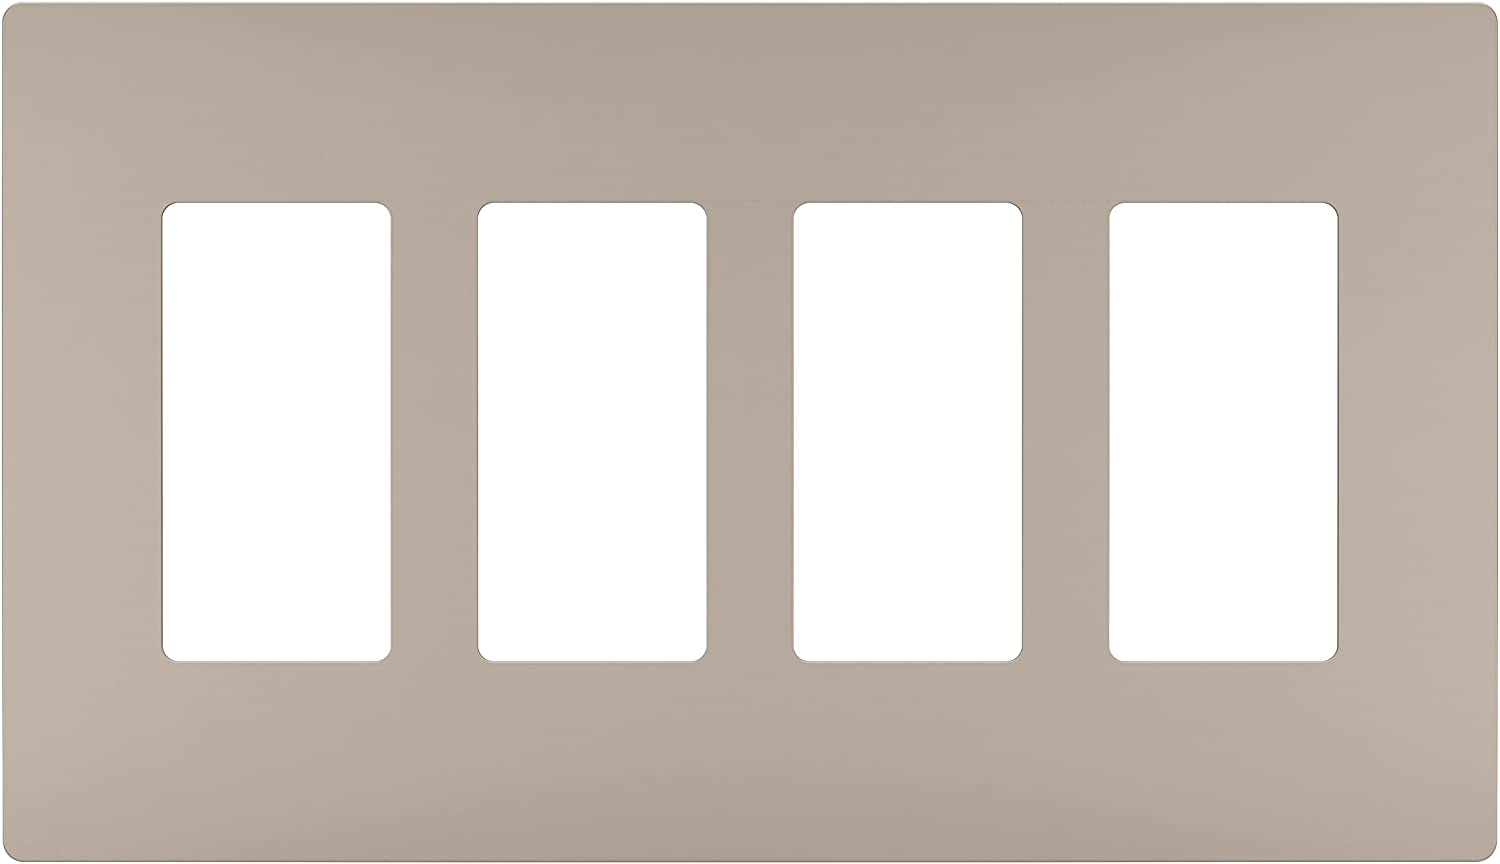 Legrand radiant Screwless Wall Plates for Decorator Rocker Outlets, 4-Gang, Brushed Nickel, RWP264NICC6